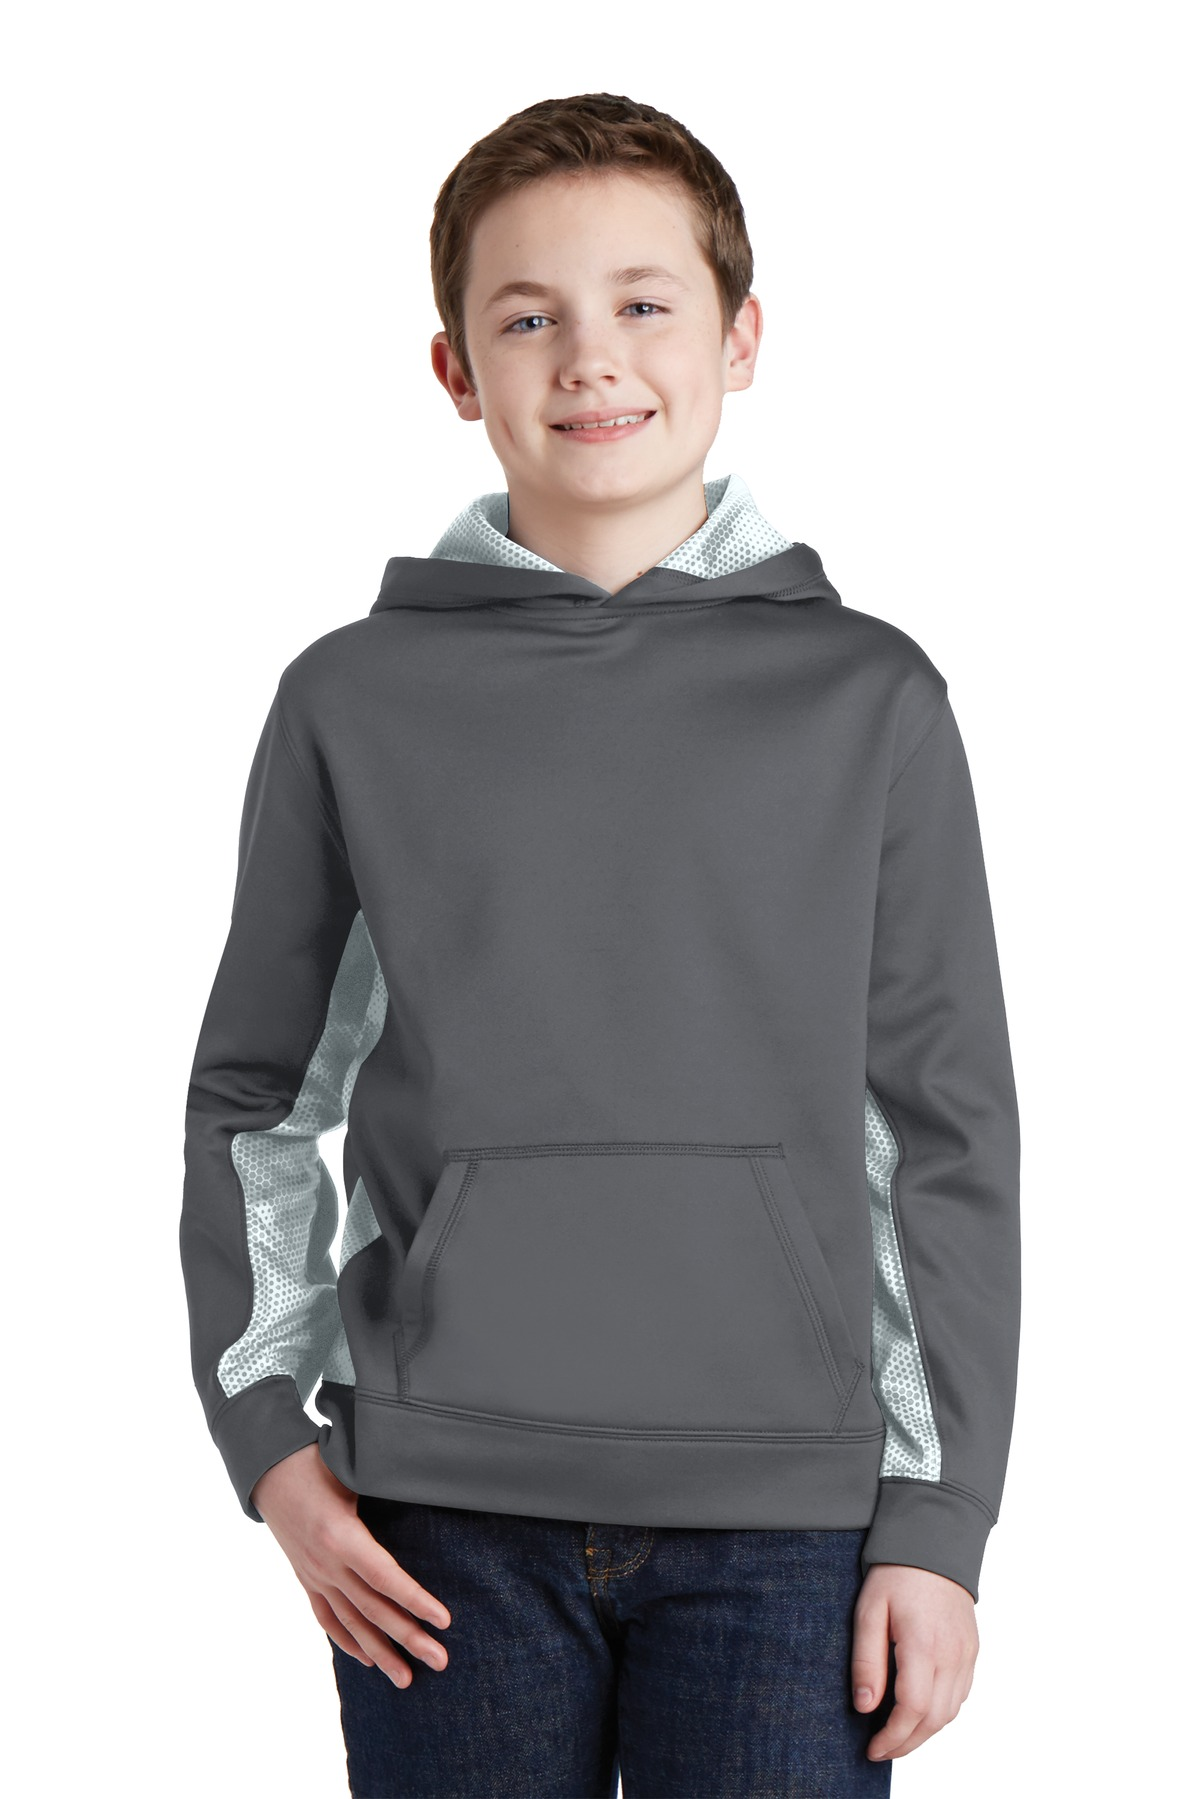 Sport-Tek ®  Youth Sport-Wick ®  CamoHex Fleece Colorblock Hooded Pullover.  YST239 - Dark Smoke Grey/ White